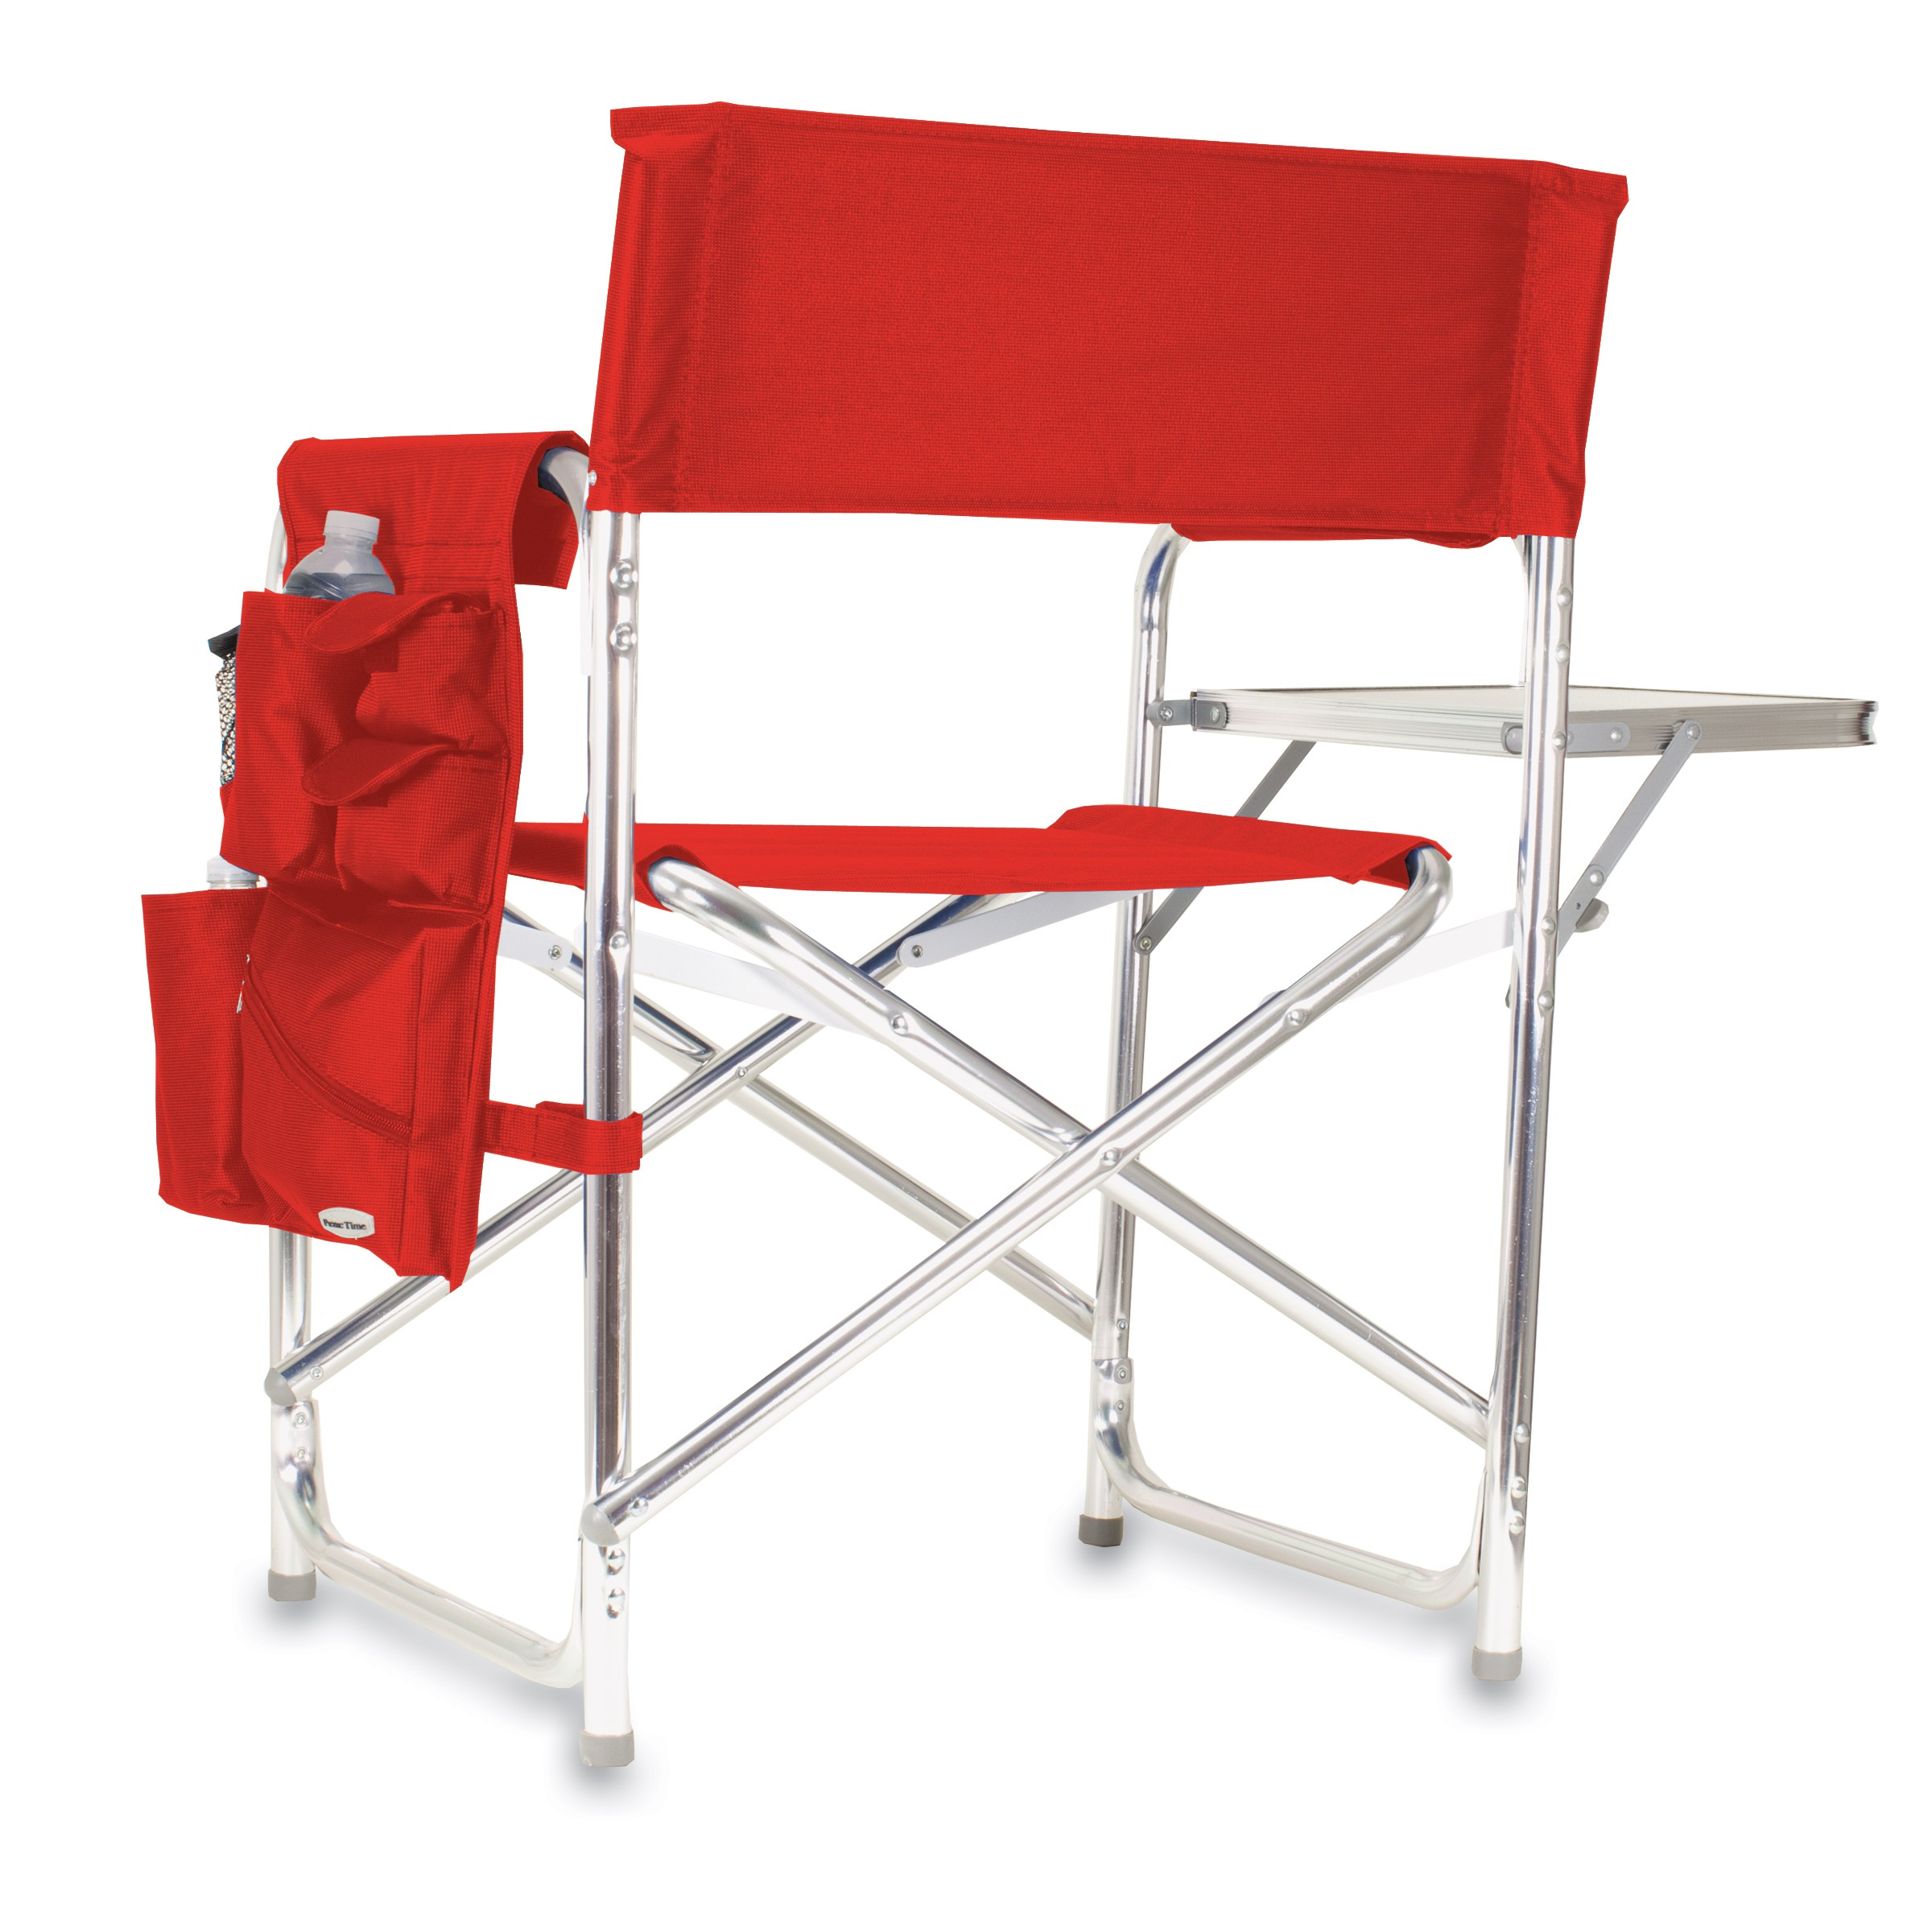 Picnic Chair Picnic Time Red Portable Folding Sports Camping Chair